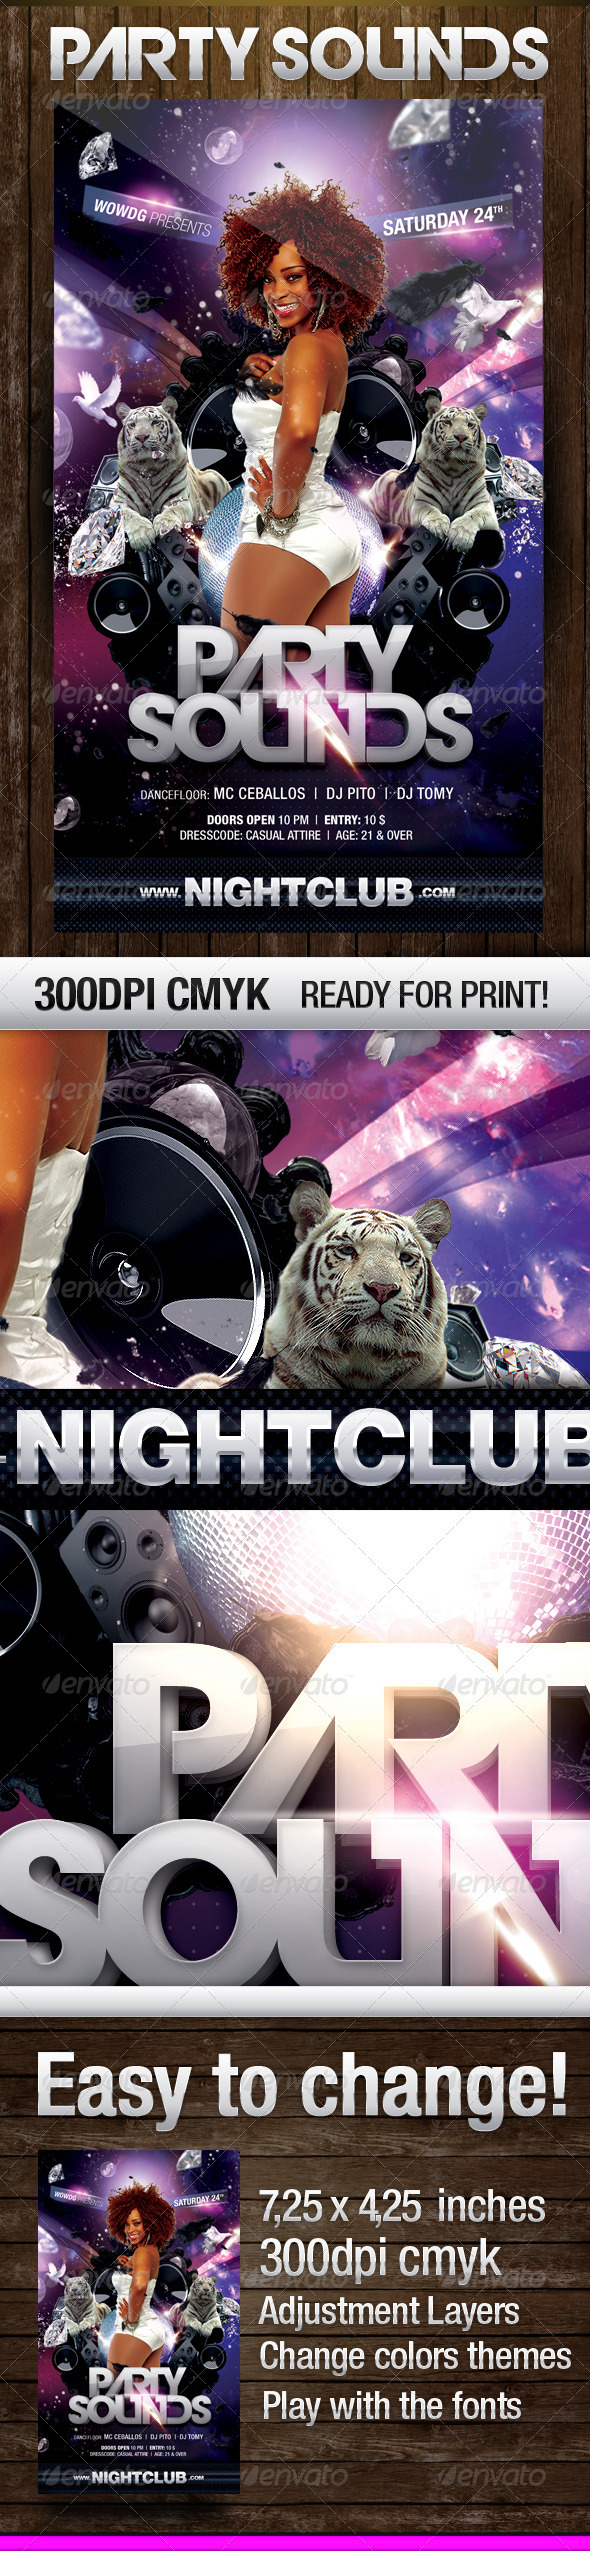 Party Sound Flyer - Clubs & Parties Events